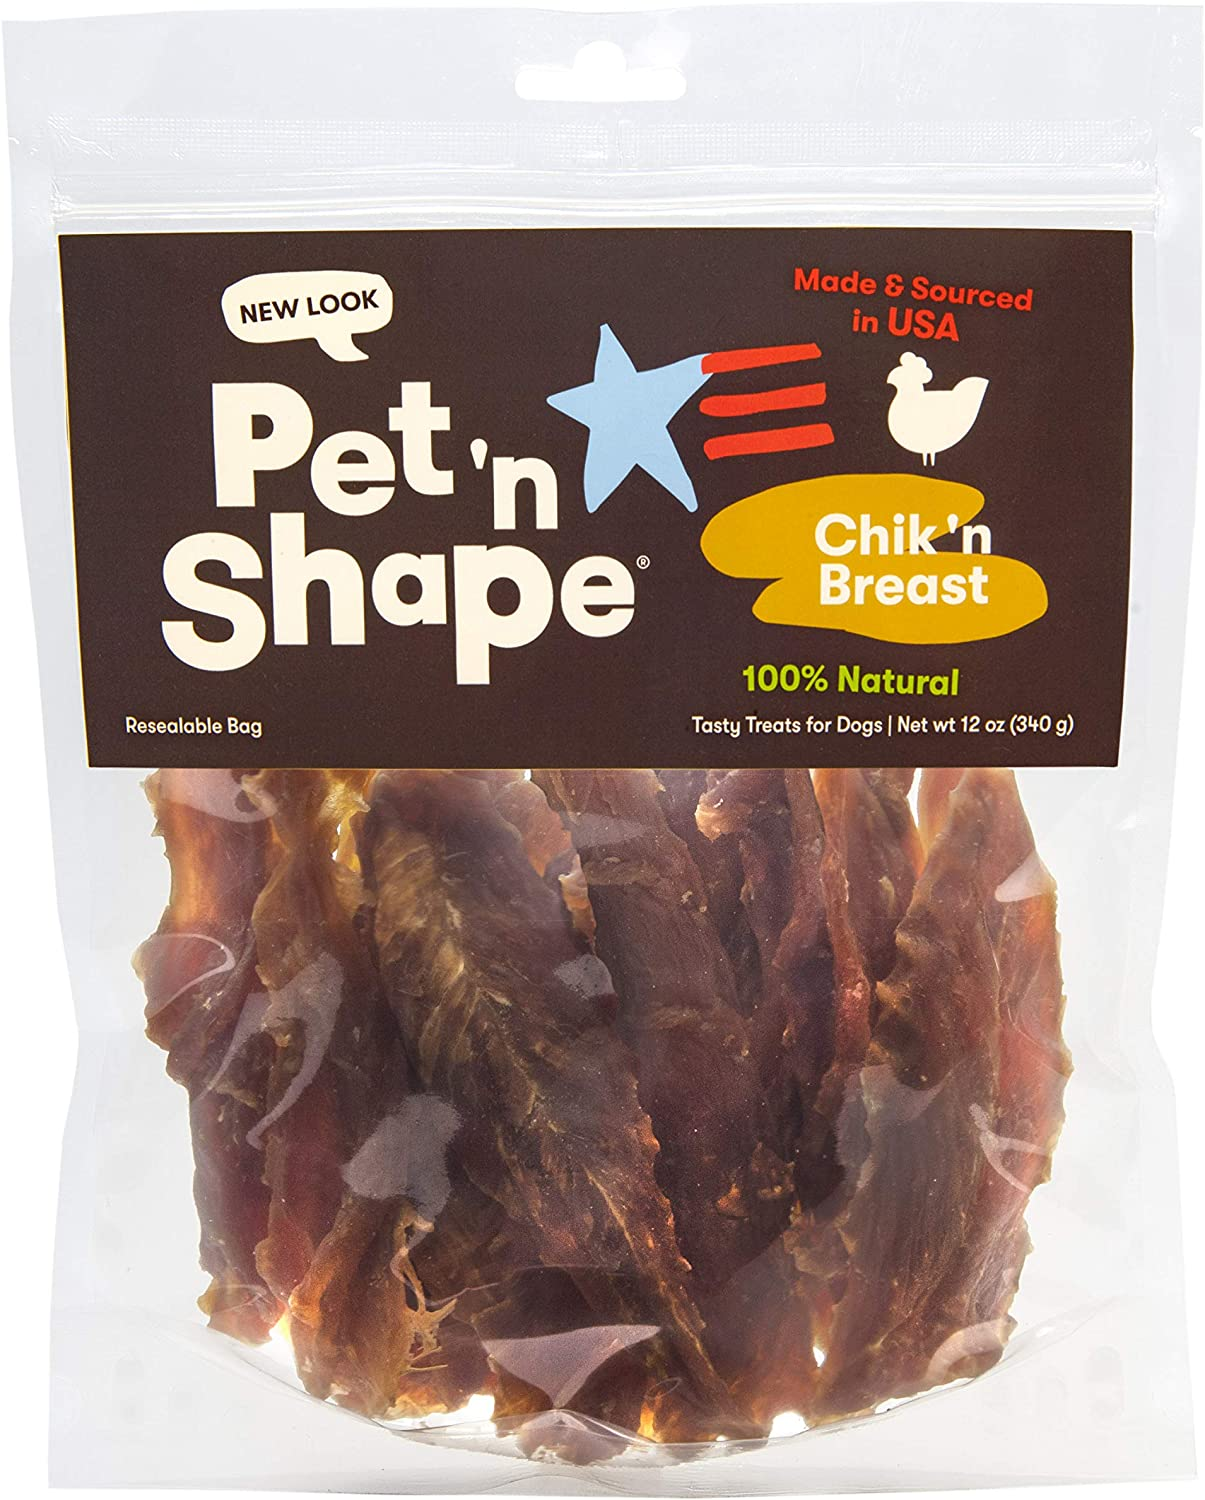 Pet Discount is also underway 'n Shape Phoenix Mall Chik Breast Jerky – Made Sourced Treat and